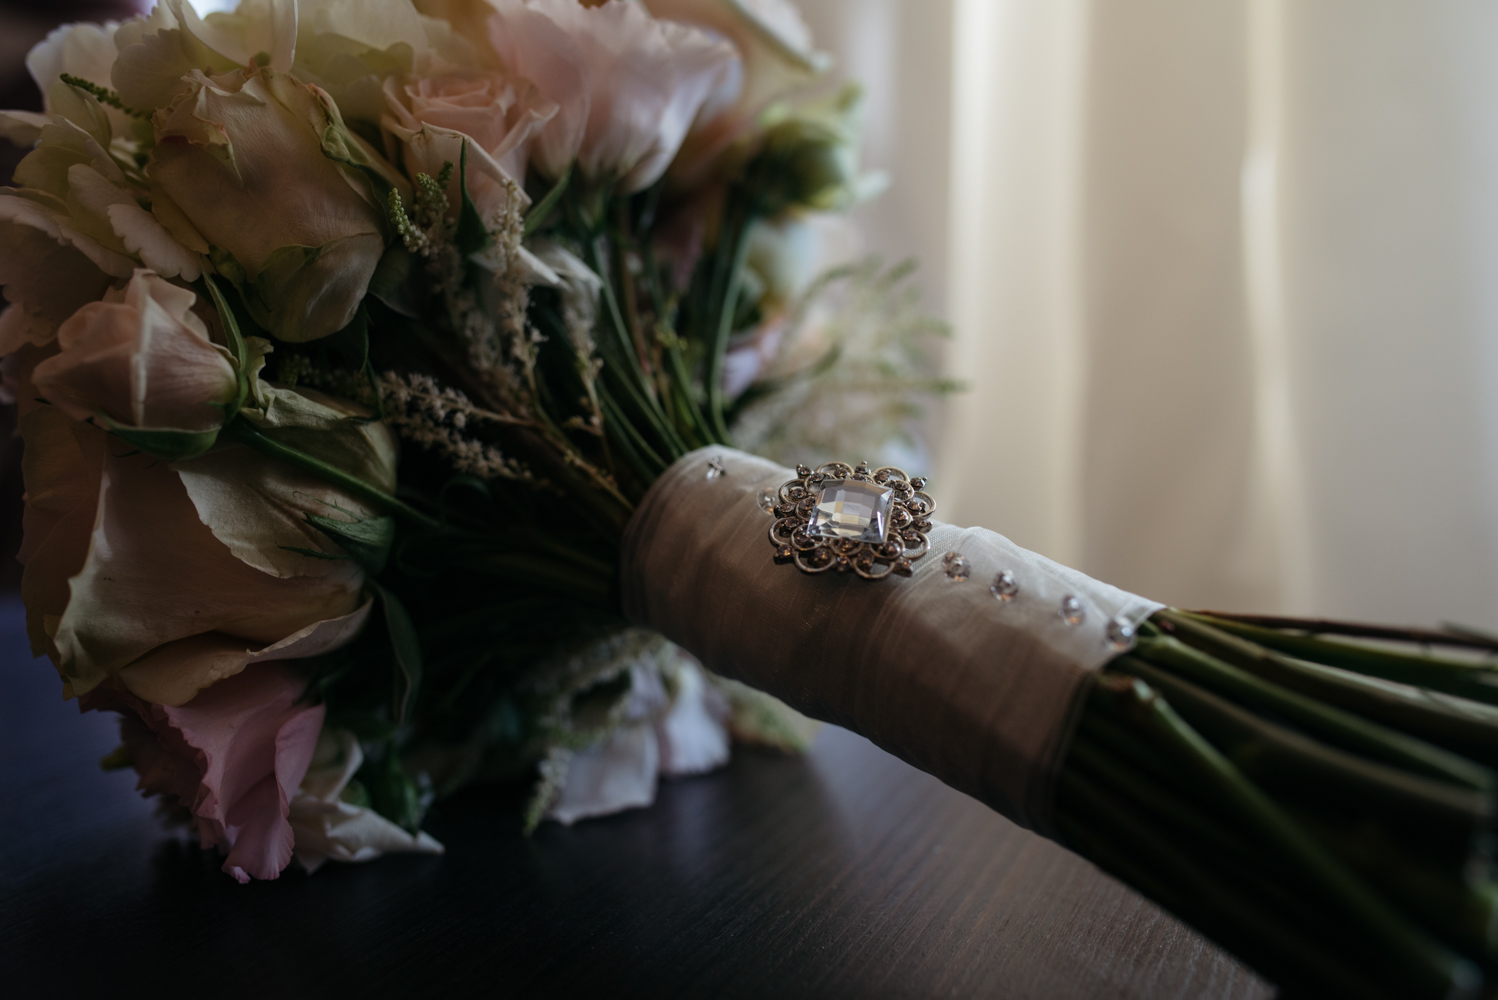 The brides bouquet with a jewel decoration